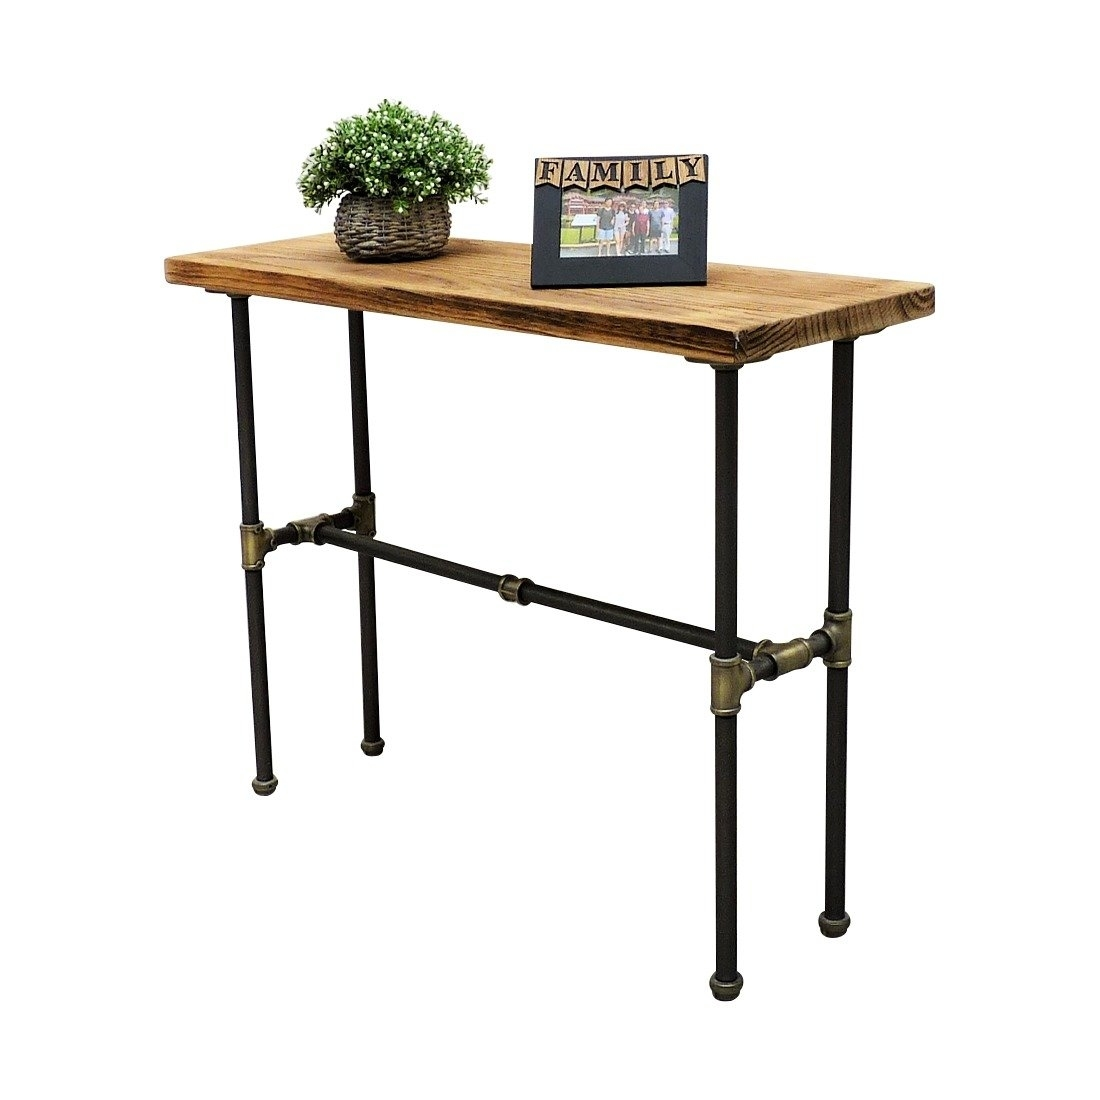 Furniture Pipeline Industrial Chic Console Table Steel Combo Stained Wood